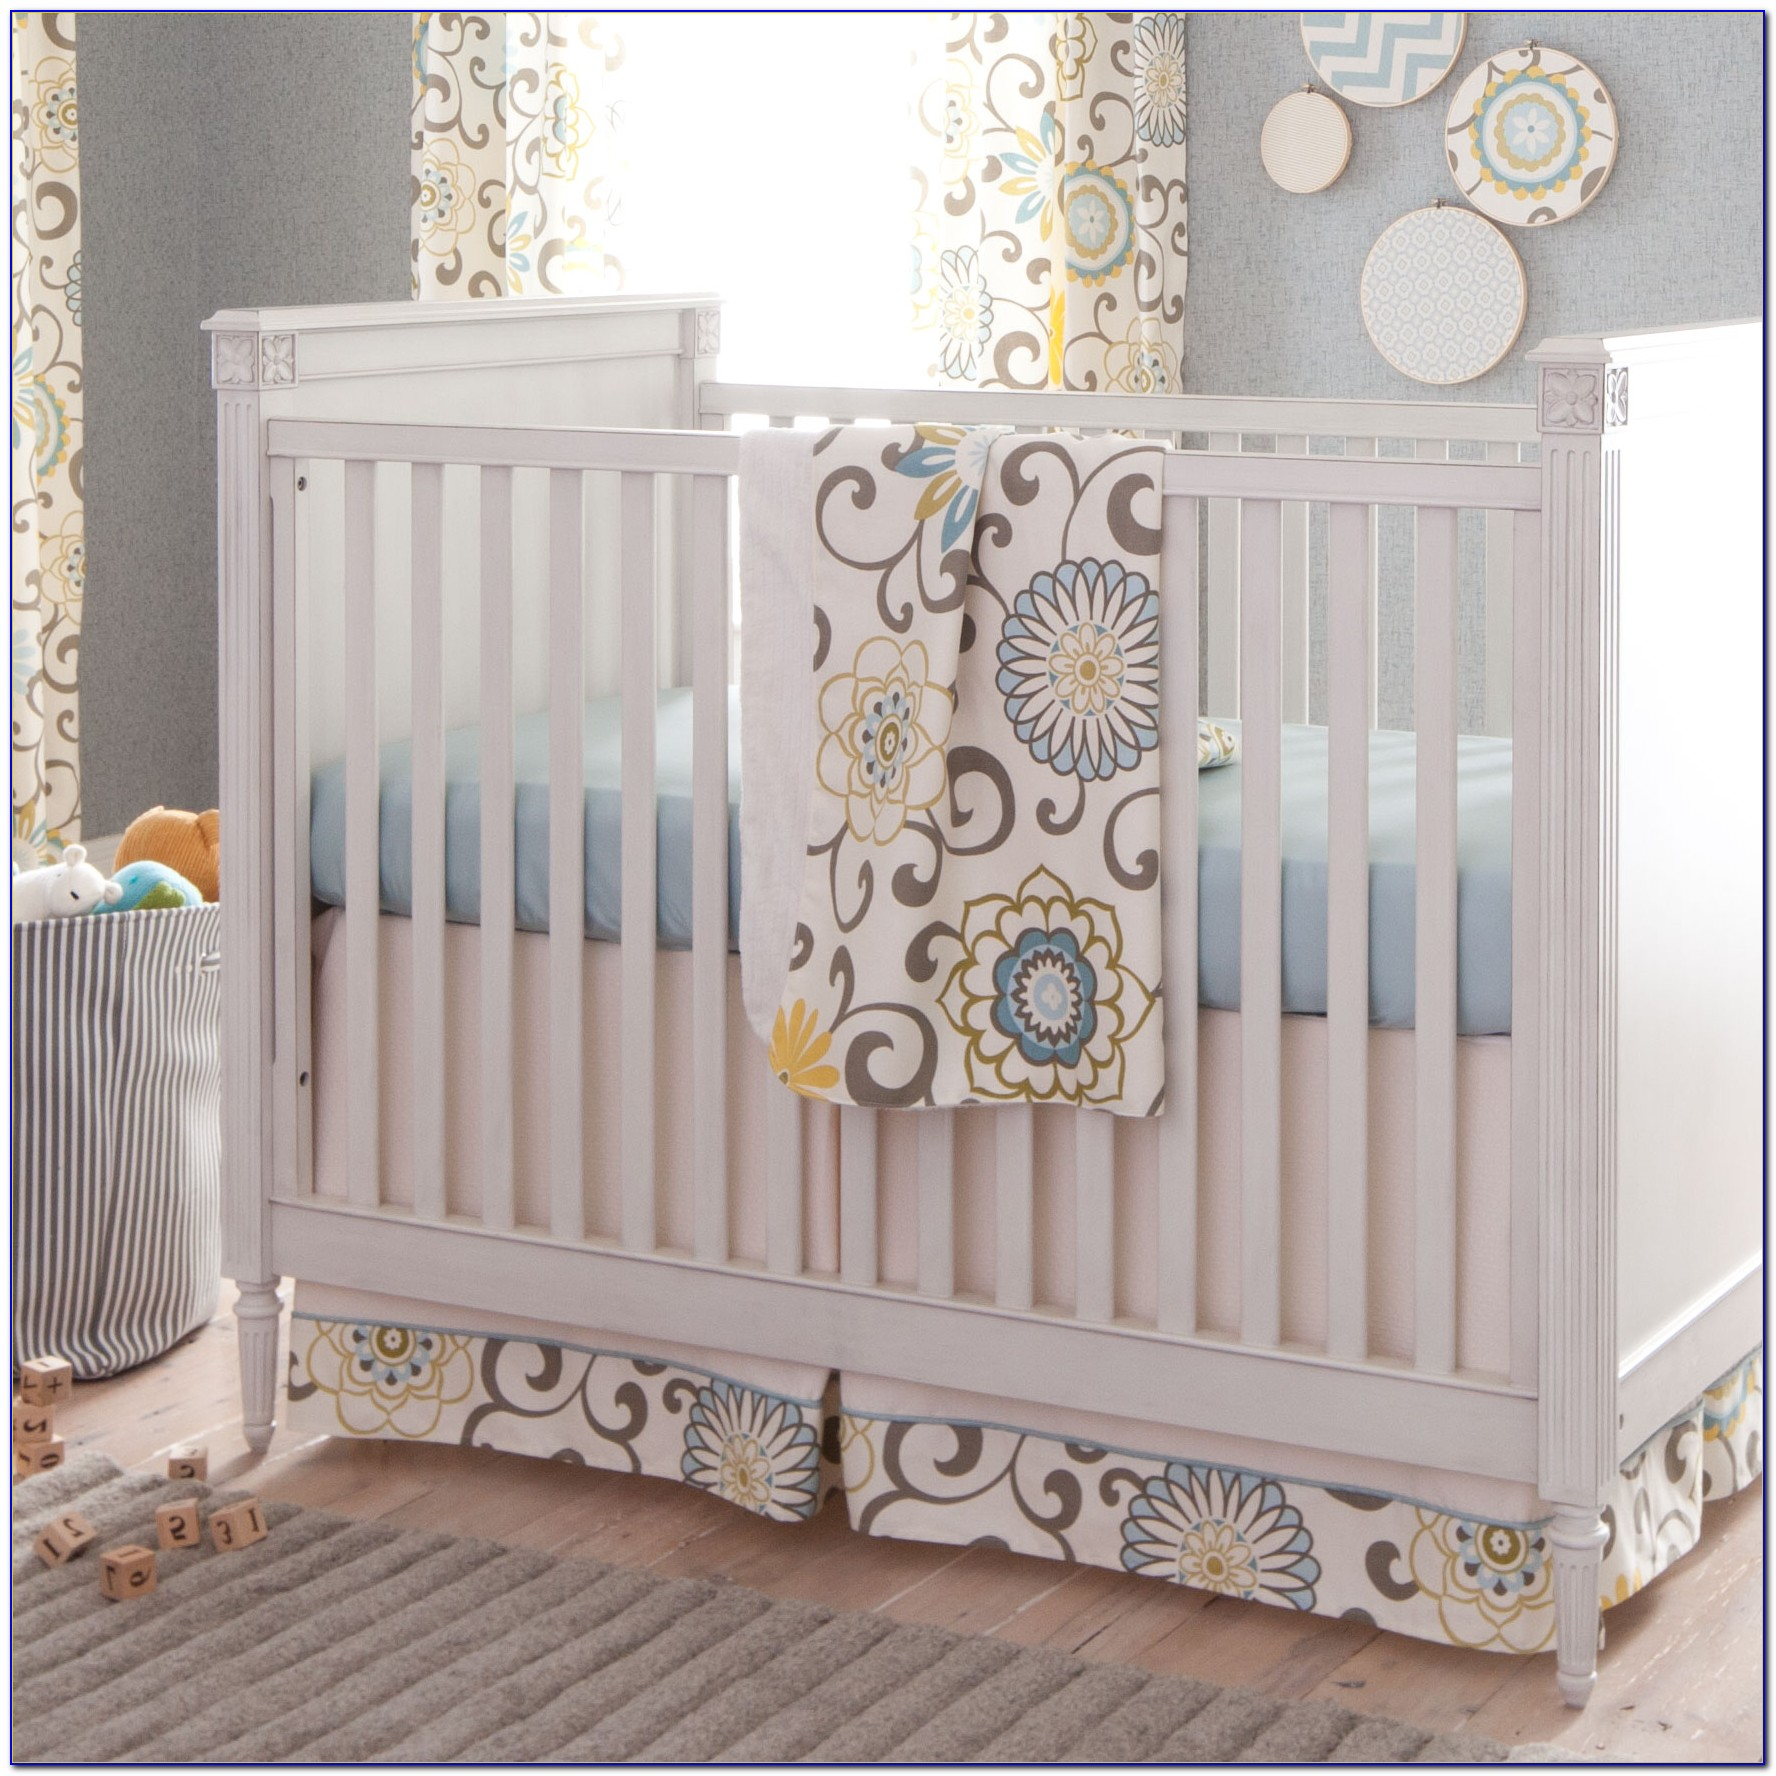 Gender Neutral Crib Bedding Ideas